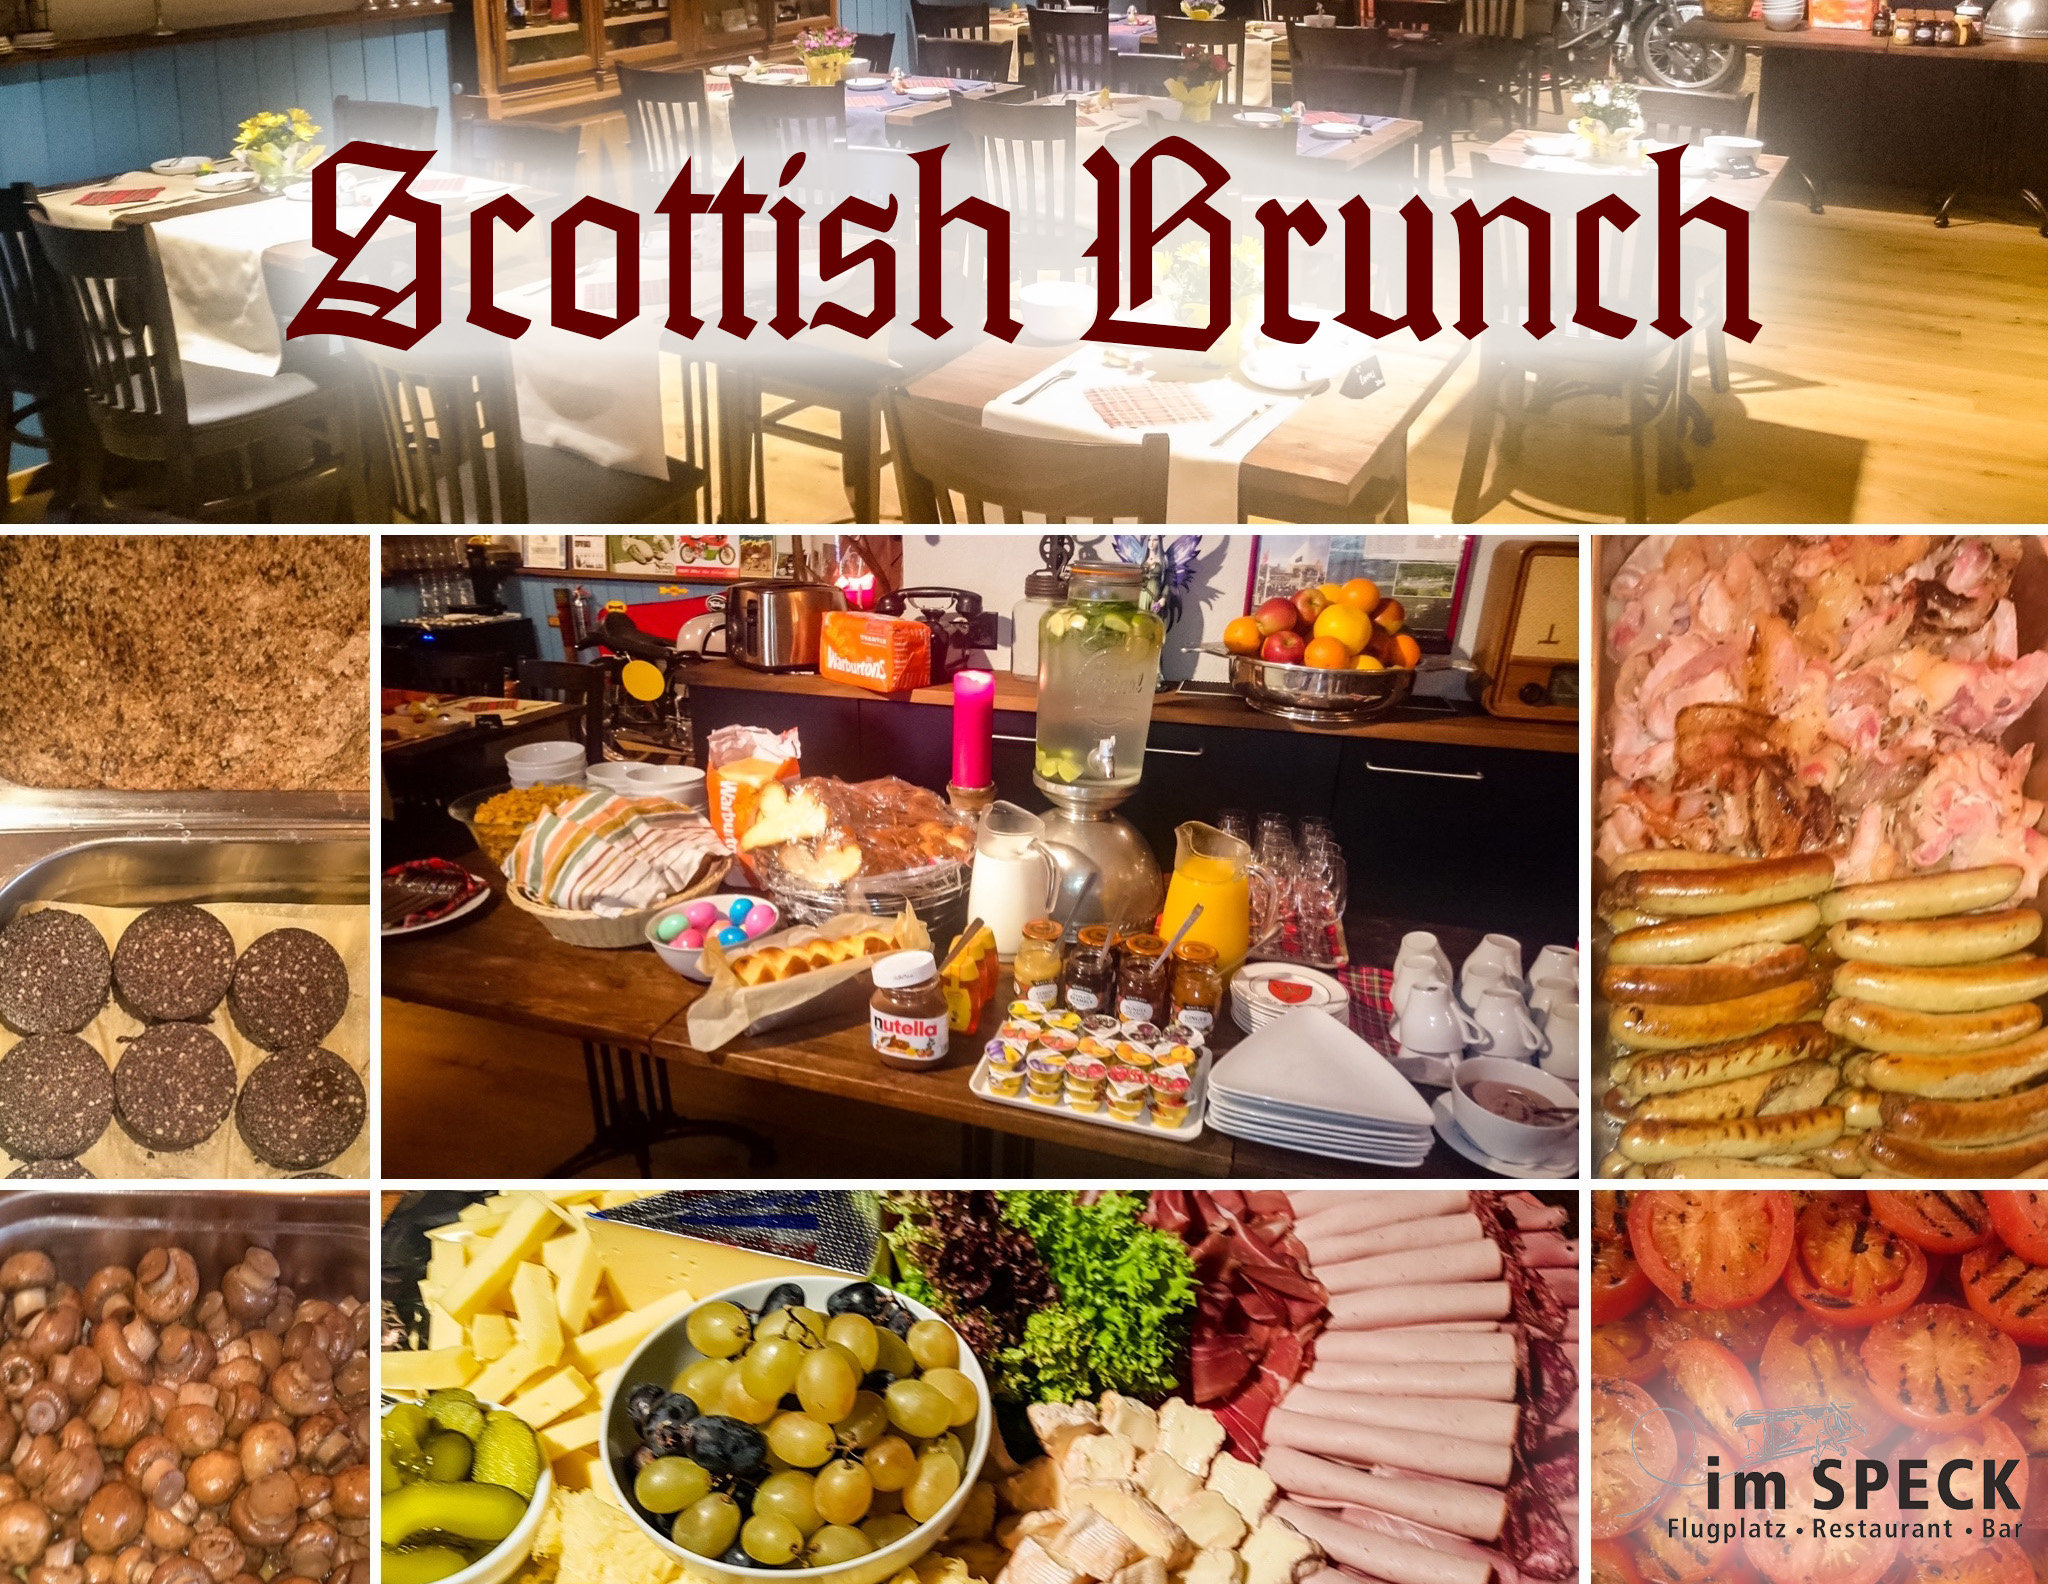 Scottish Brunch